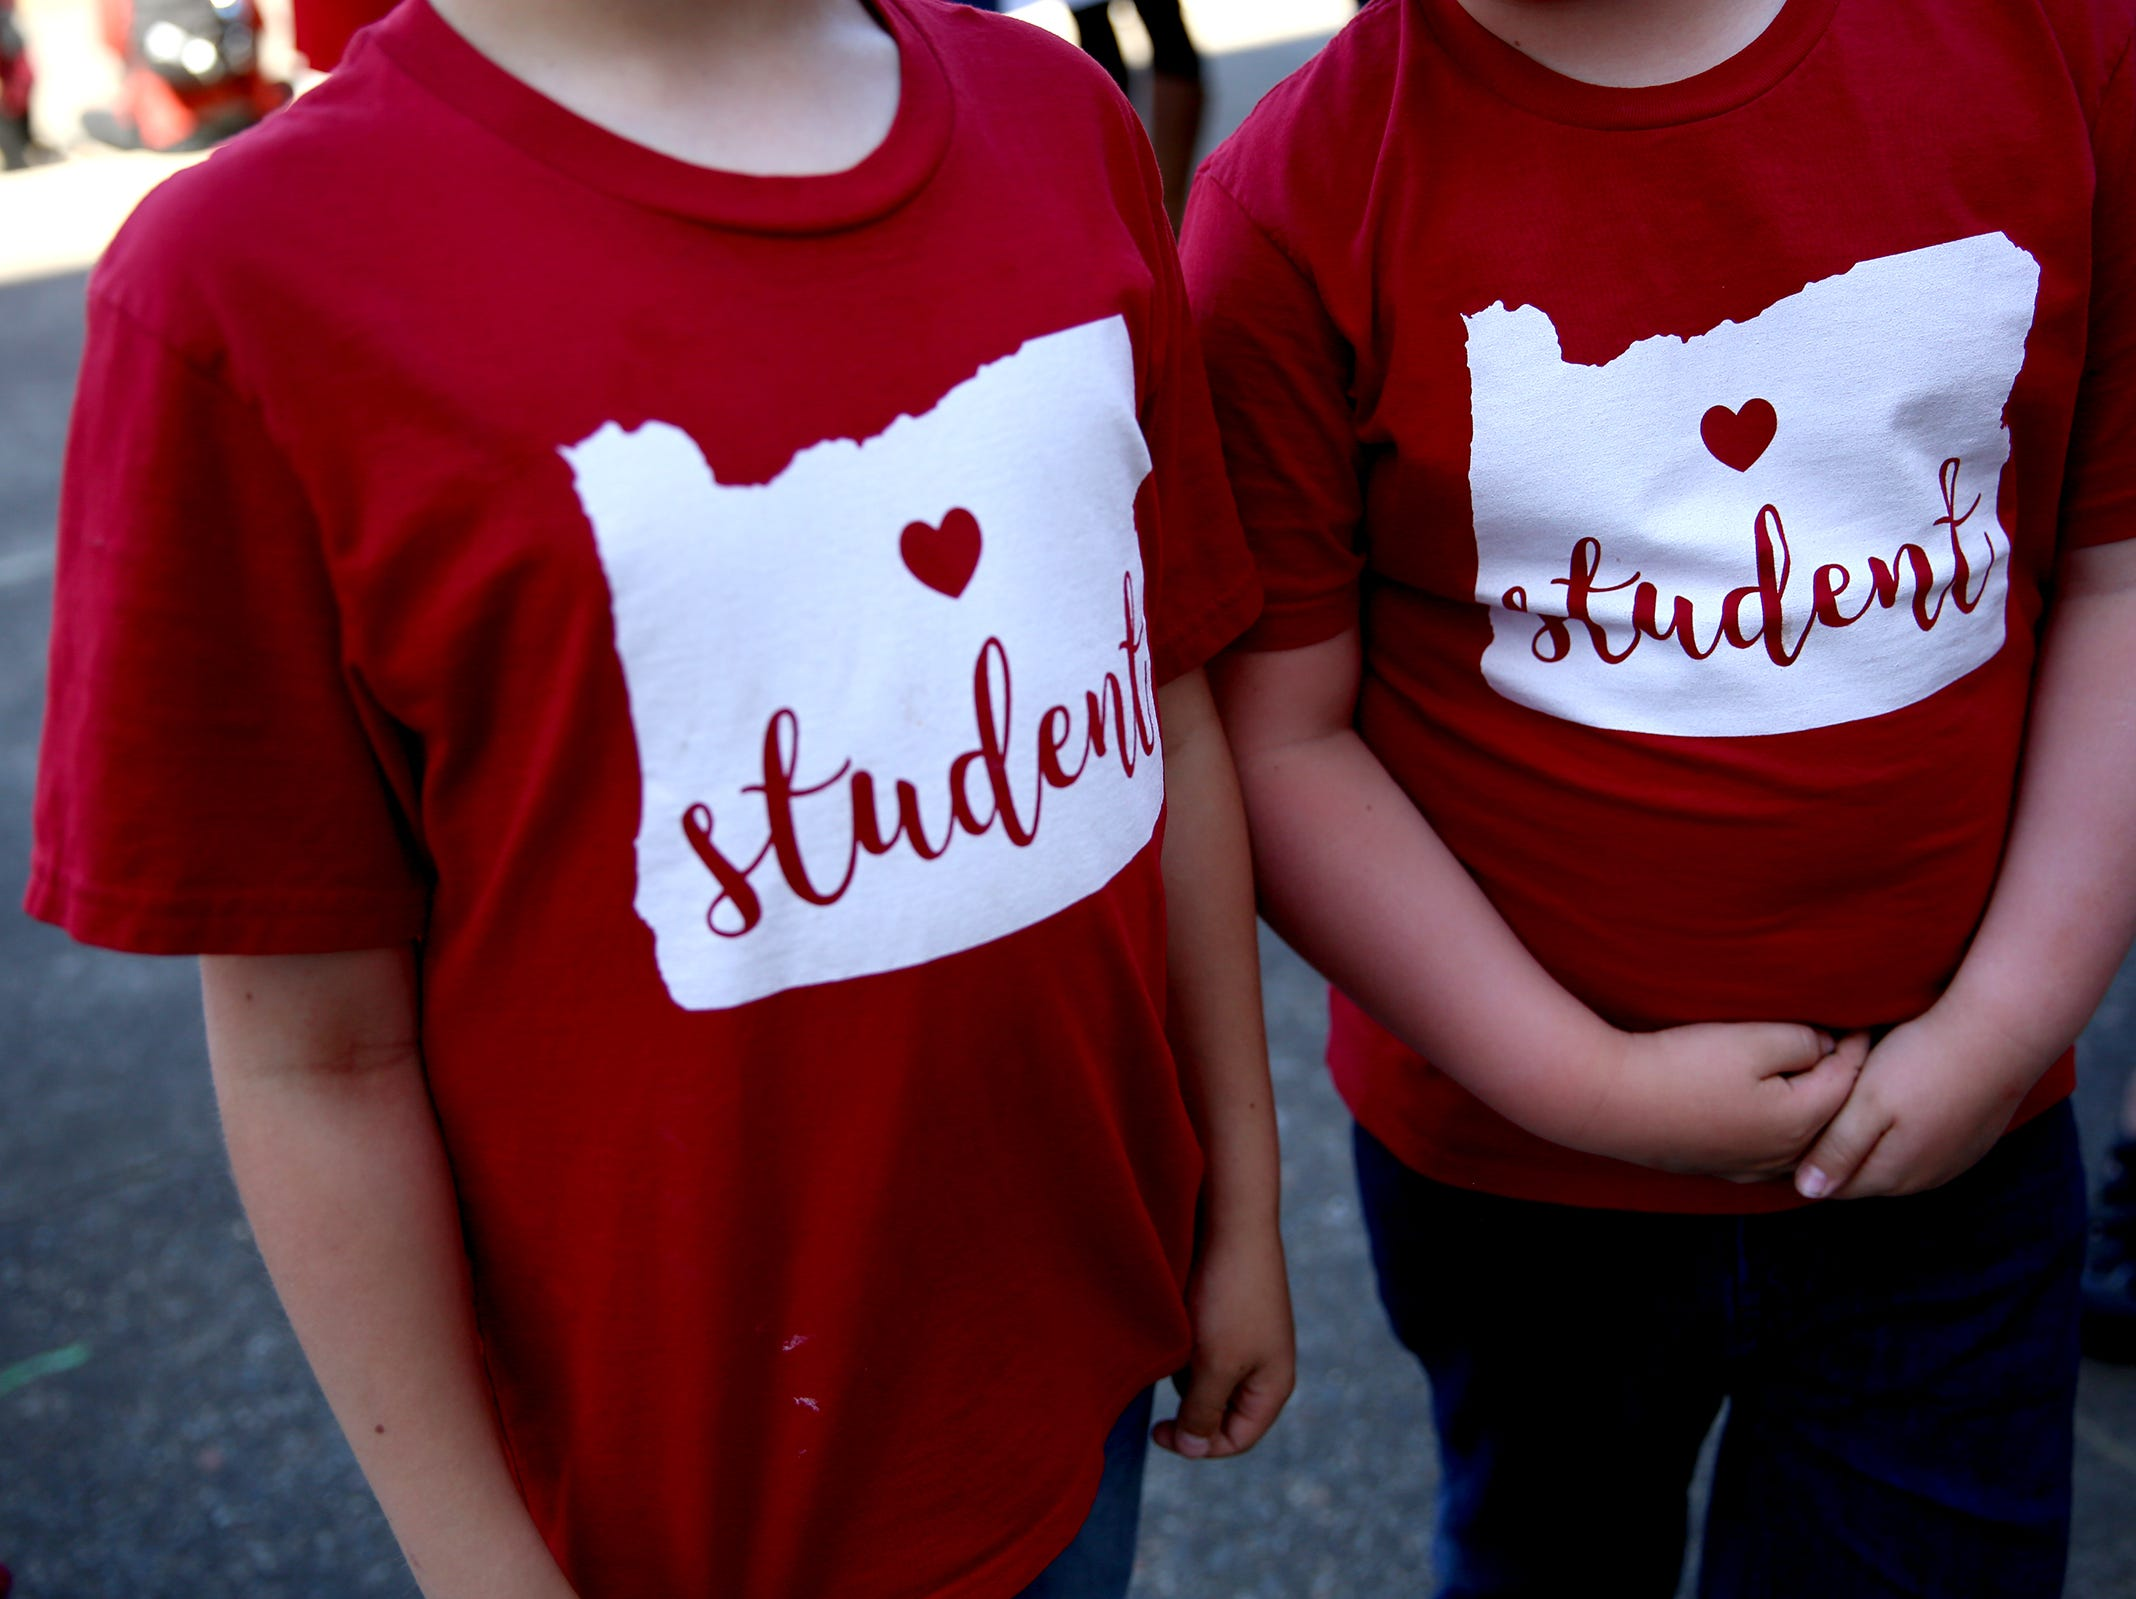 Two students wear t-shirts supporting Red for Ed during a rally for education funding where thousands of teachers and education activists marched from Riverfront Park to the Oregon State Capitol in Salem on May 8, 2019.